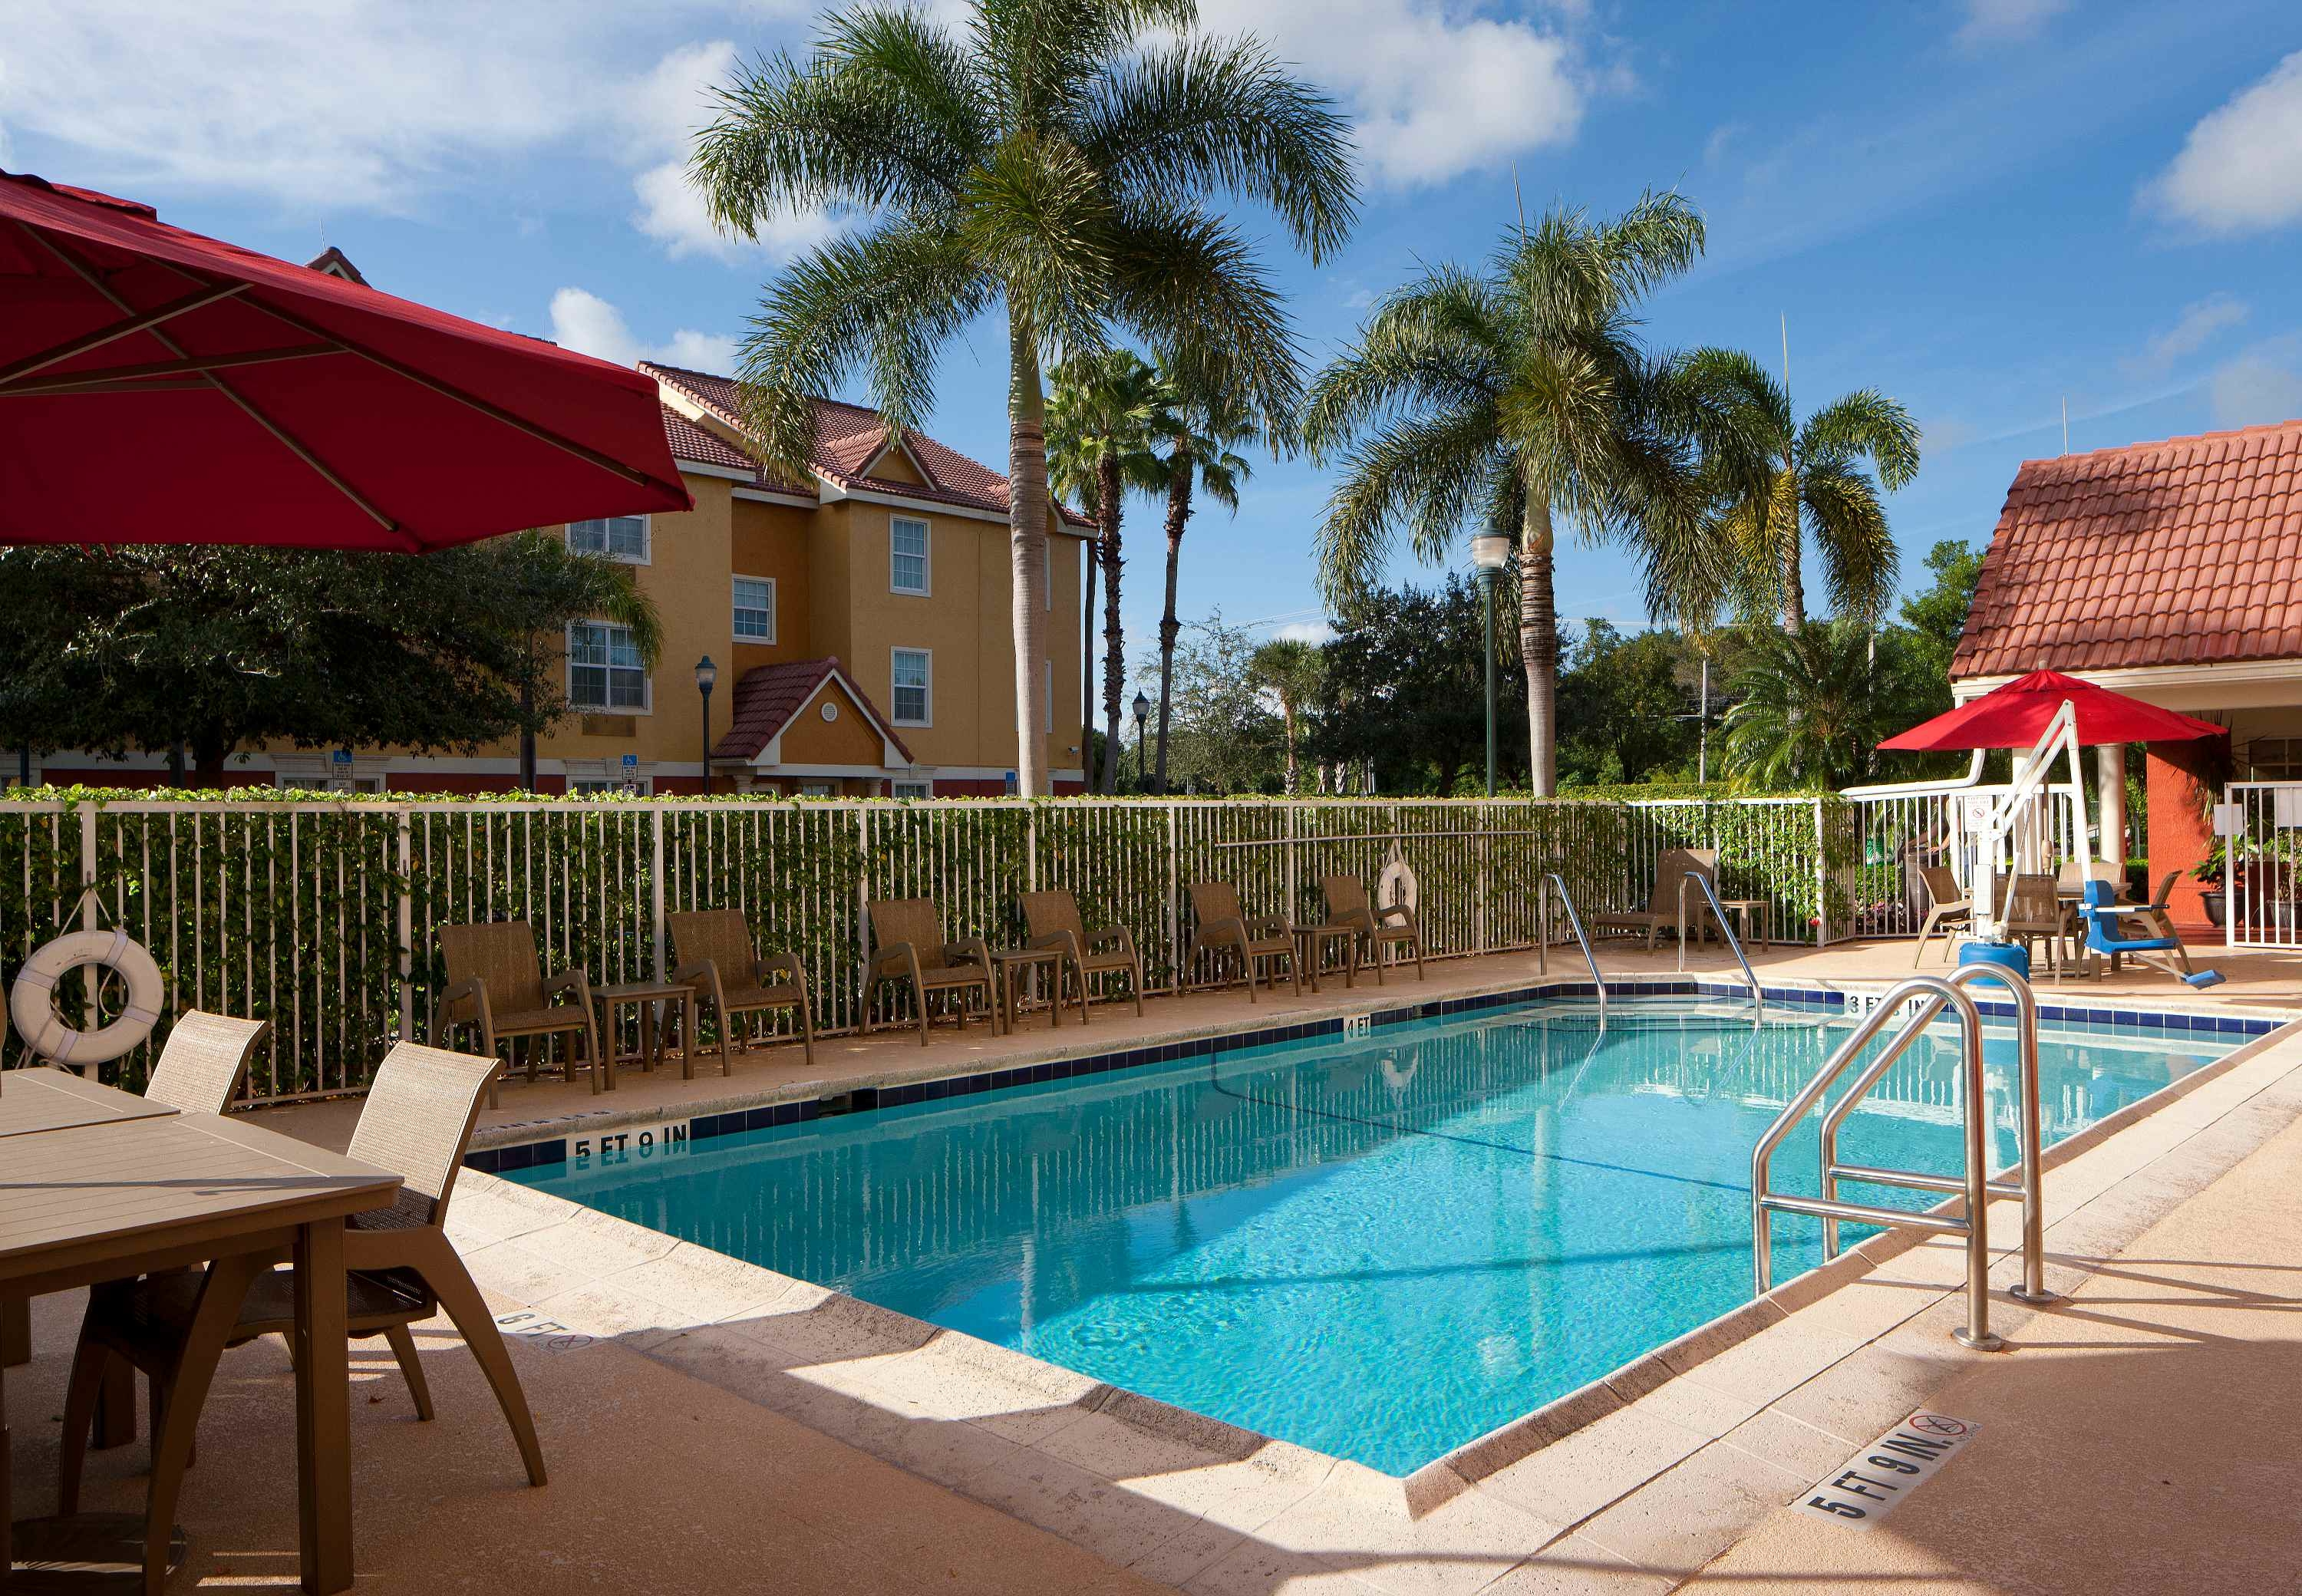 TownePlace Suites by Marriott Fort Lauderdale West image 3